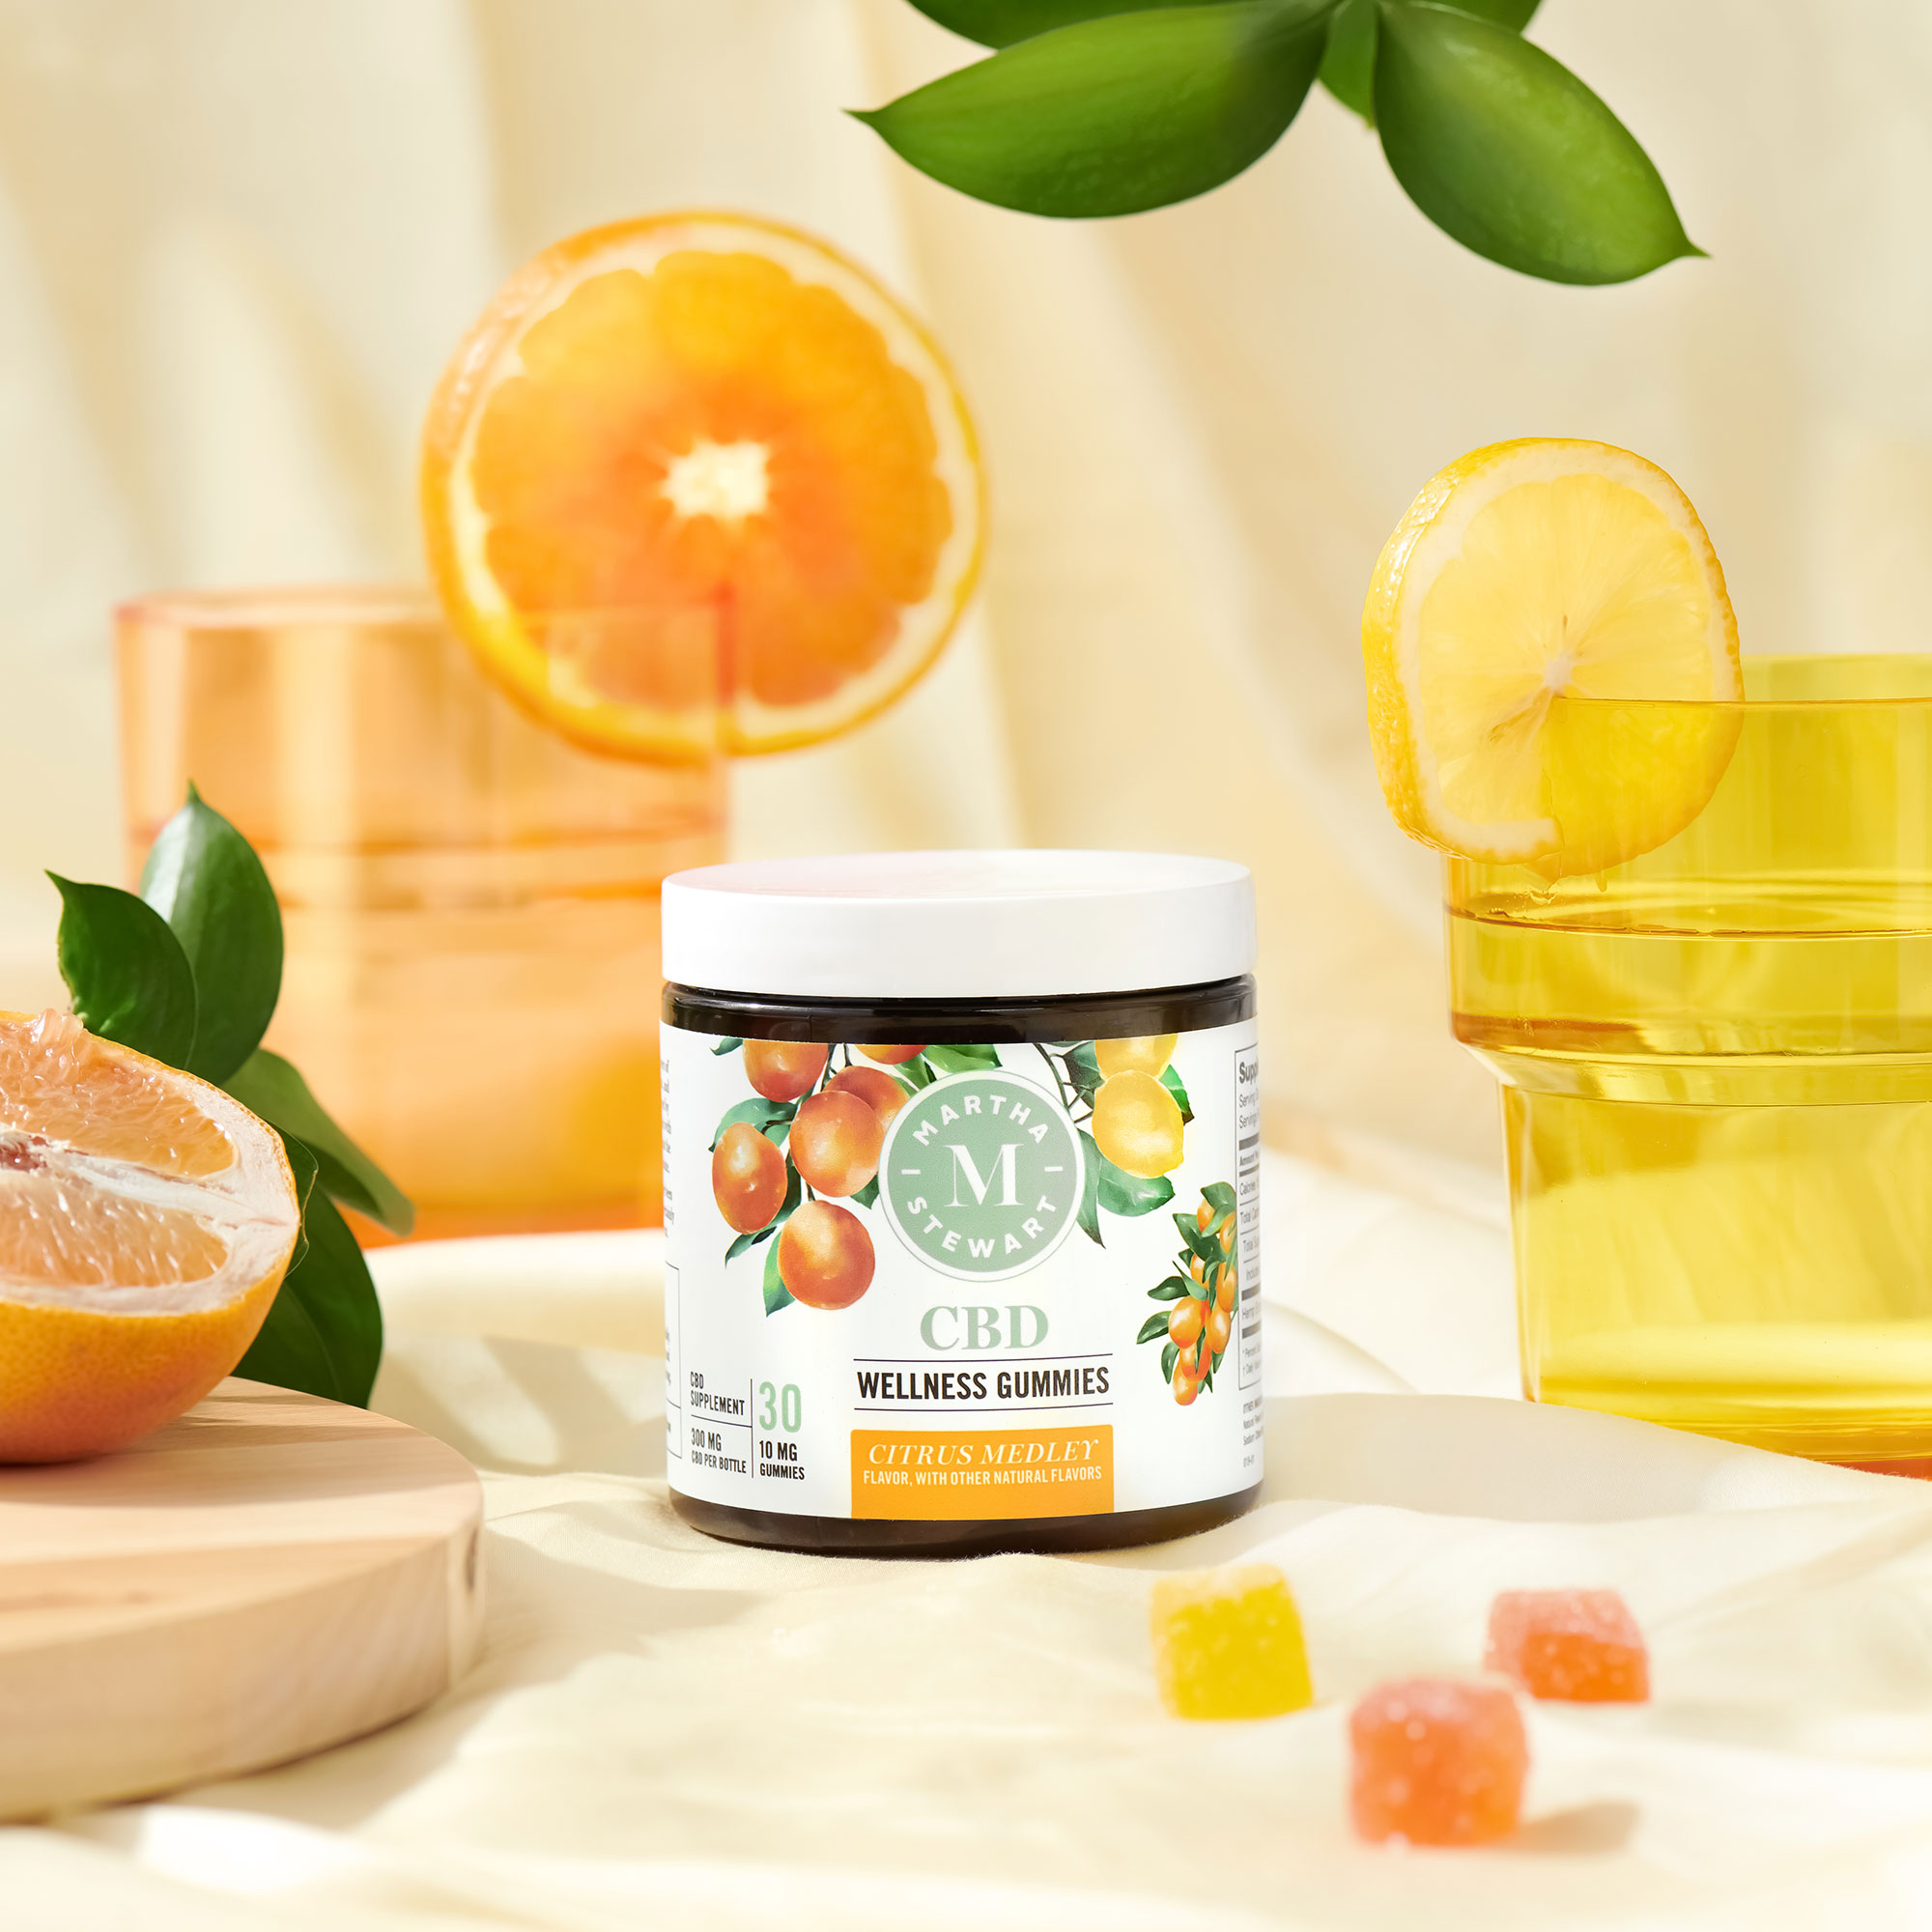 Martha Stewart CBD citrus gummies